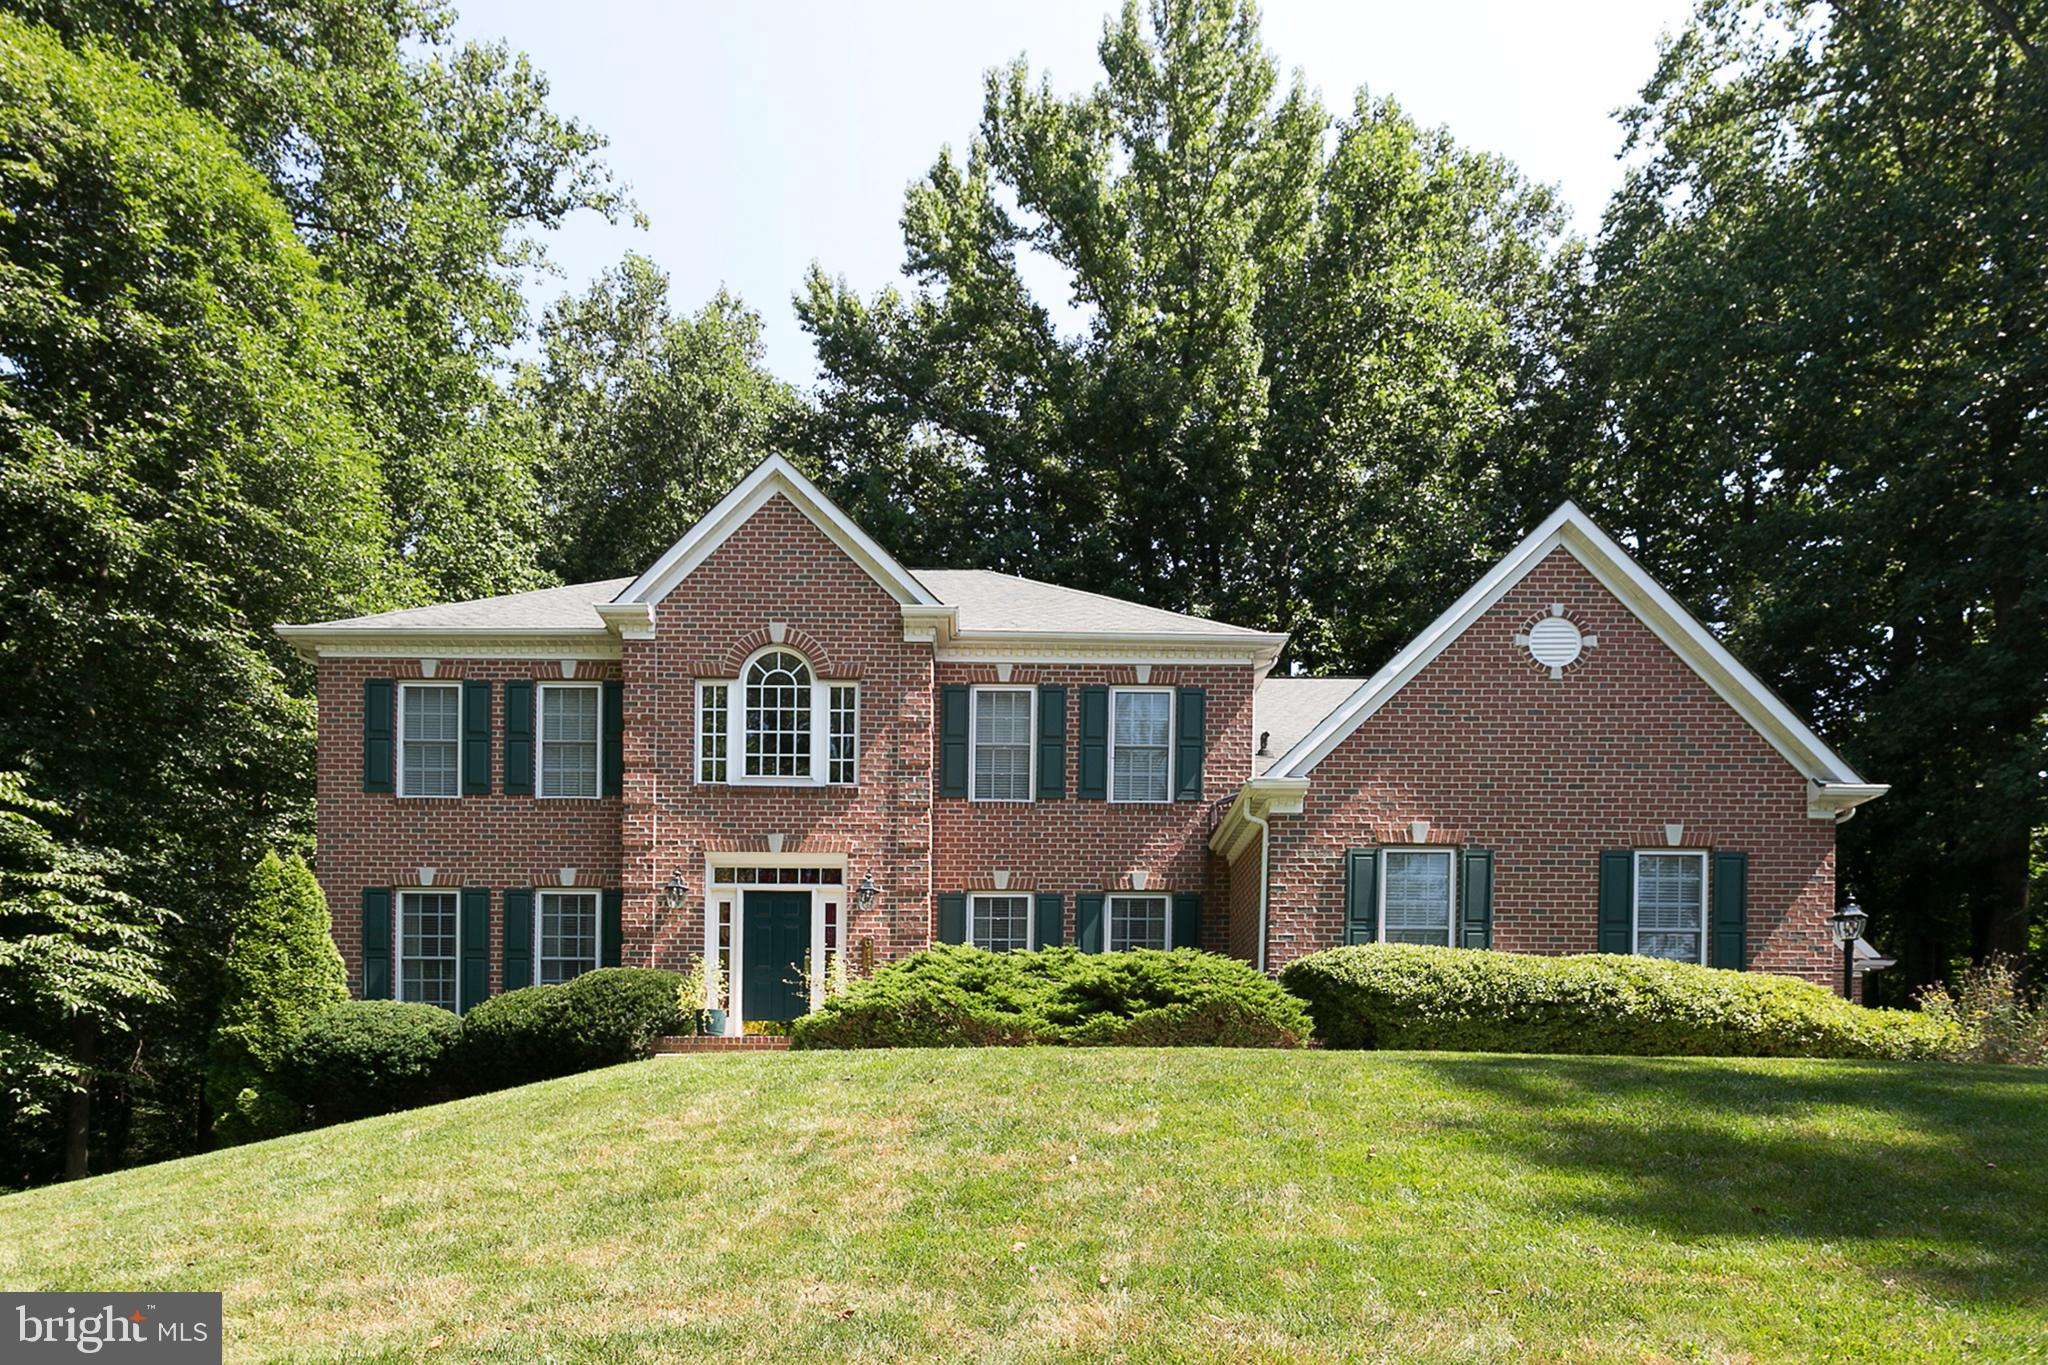 614 TRAVELLER COURT, LOTHIAN, MD 20711